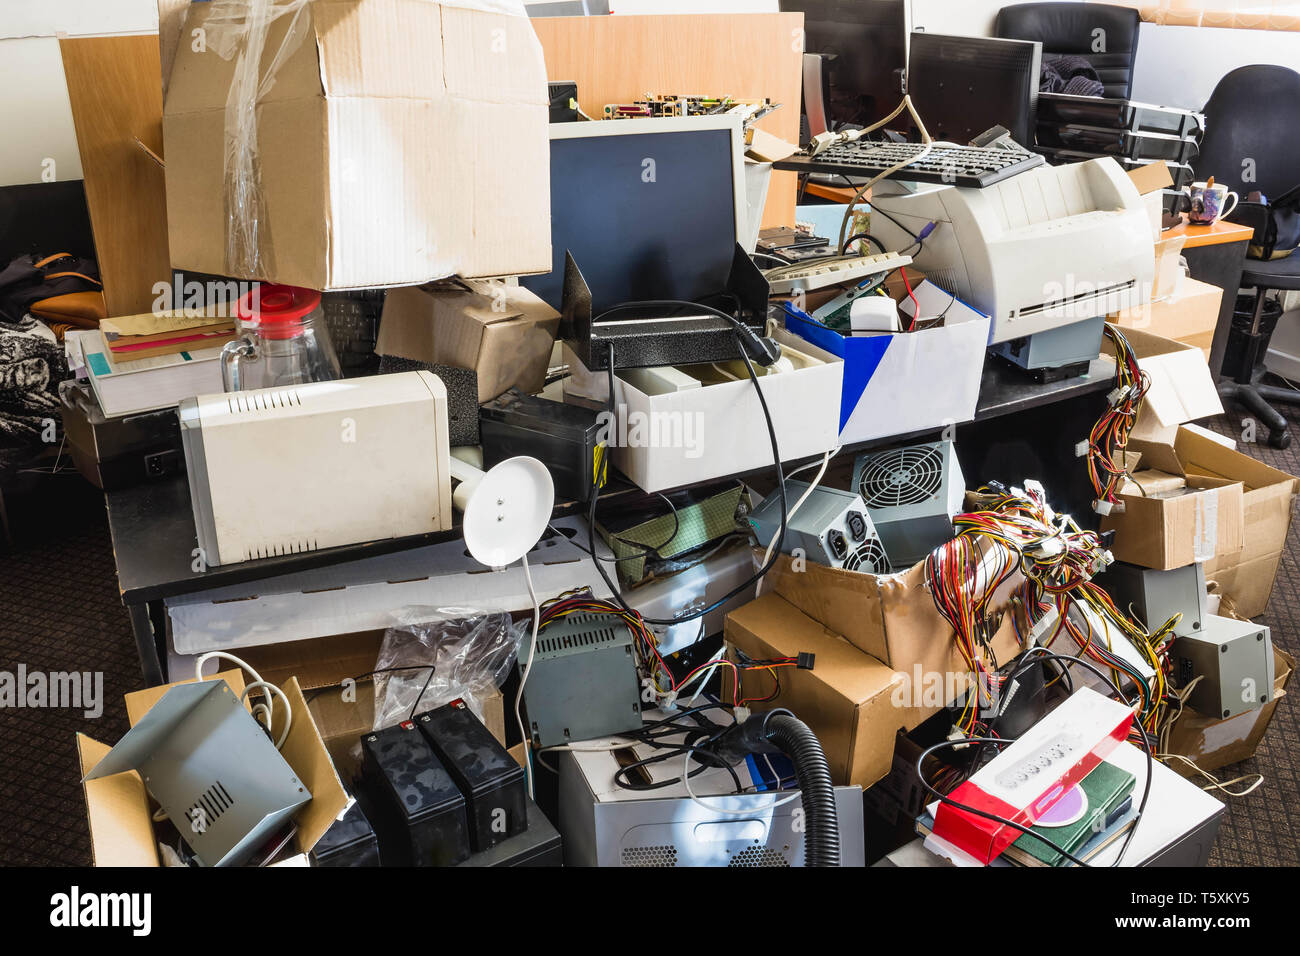 A messy desktop with stacks of files and other documents, all kind of office supplies and part of a keyboard. - Stock Image